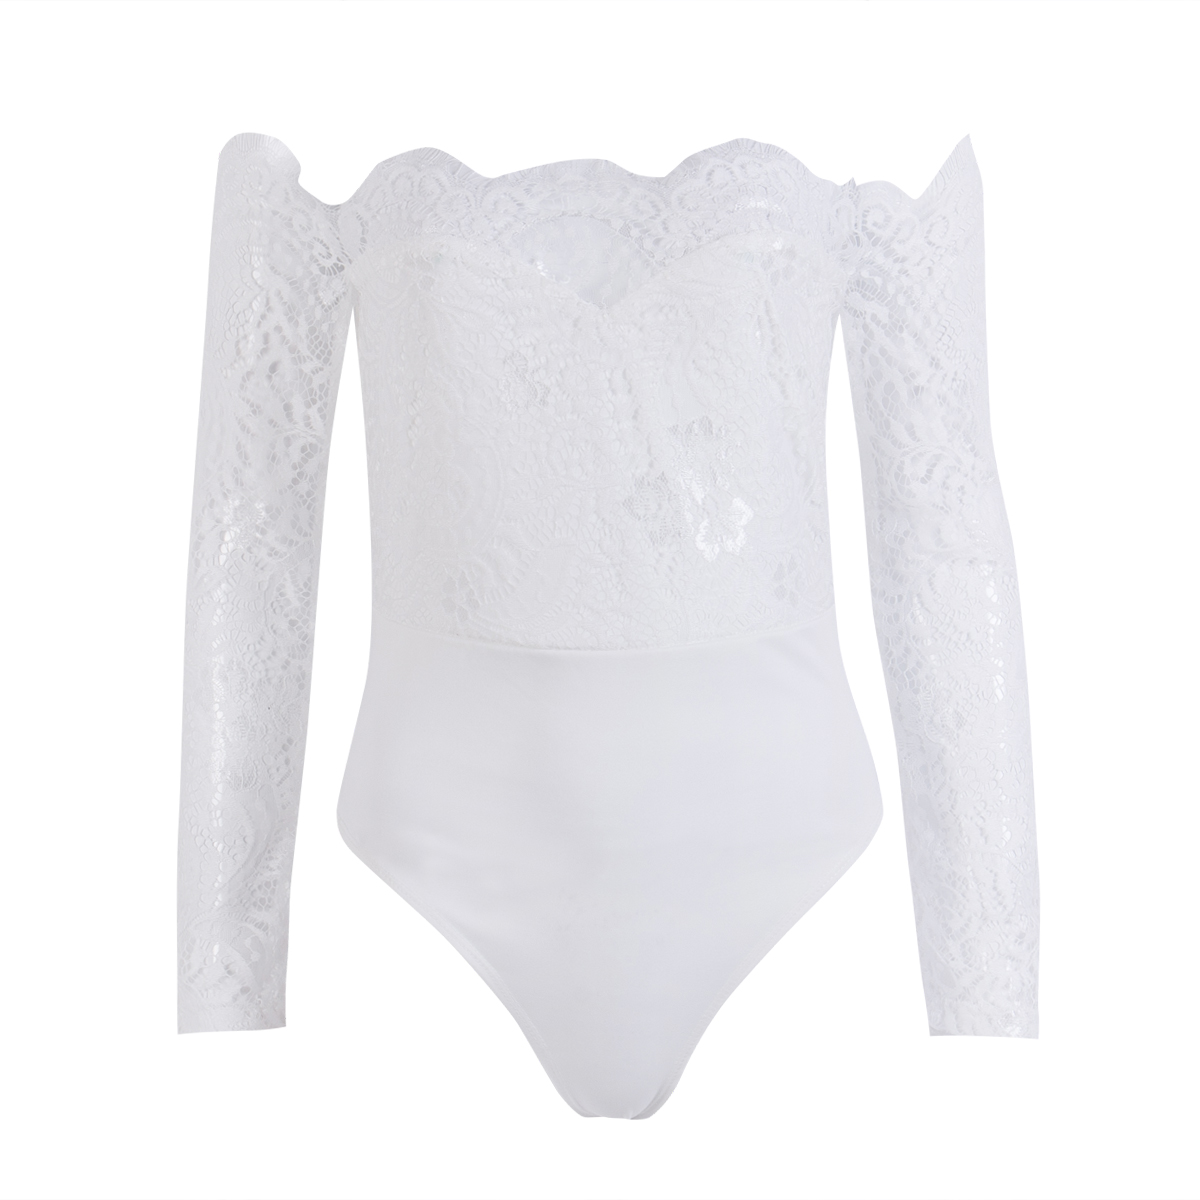 16c9d1af08ee Sexy Women Off Shoulder Slash Neck Lace Jumpsuits White Bodycon Ruffles  Party Playsuits Bodysuit Bell Bottom Pants-in Jumpsuits from Women s  Clothing on ...